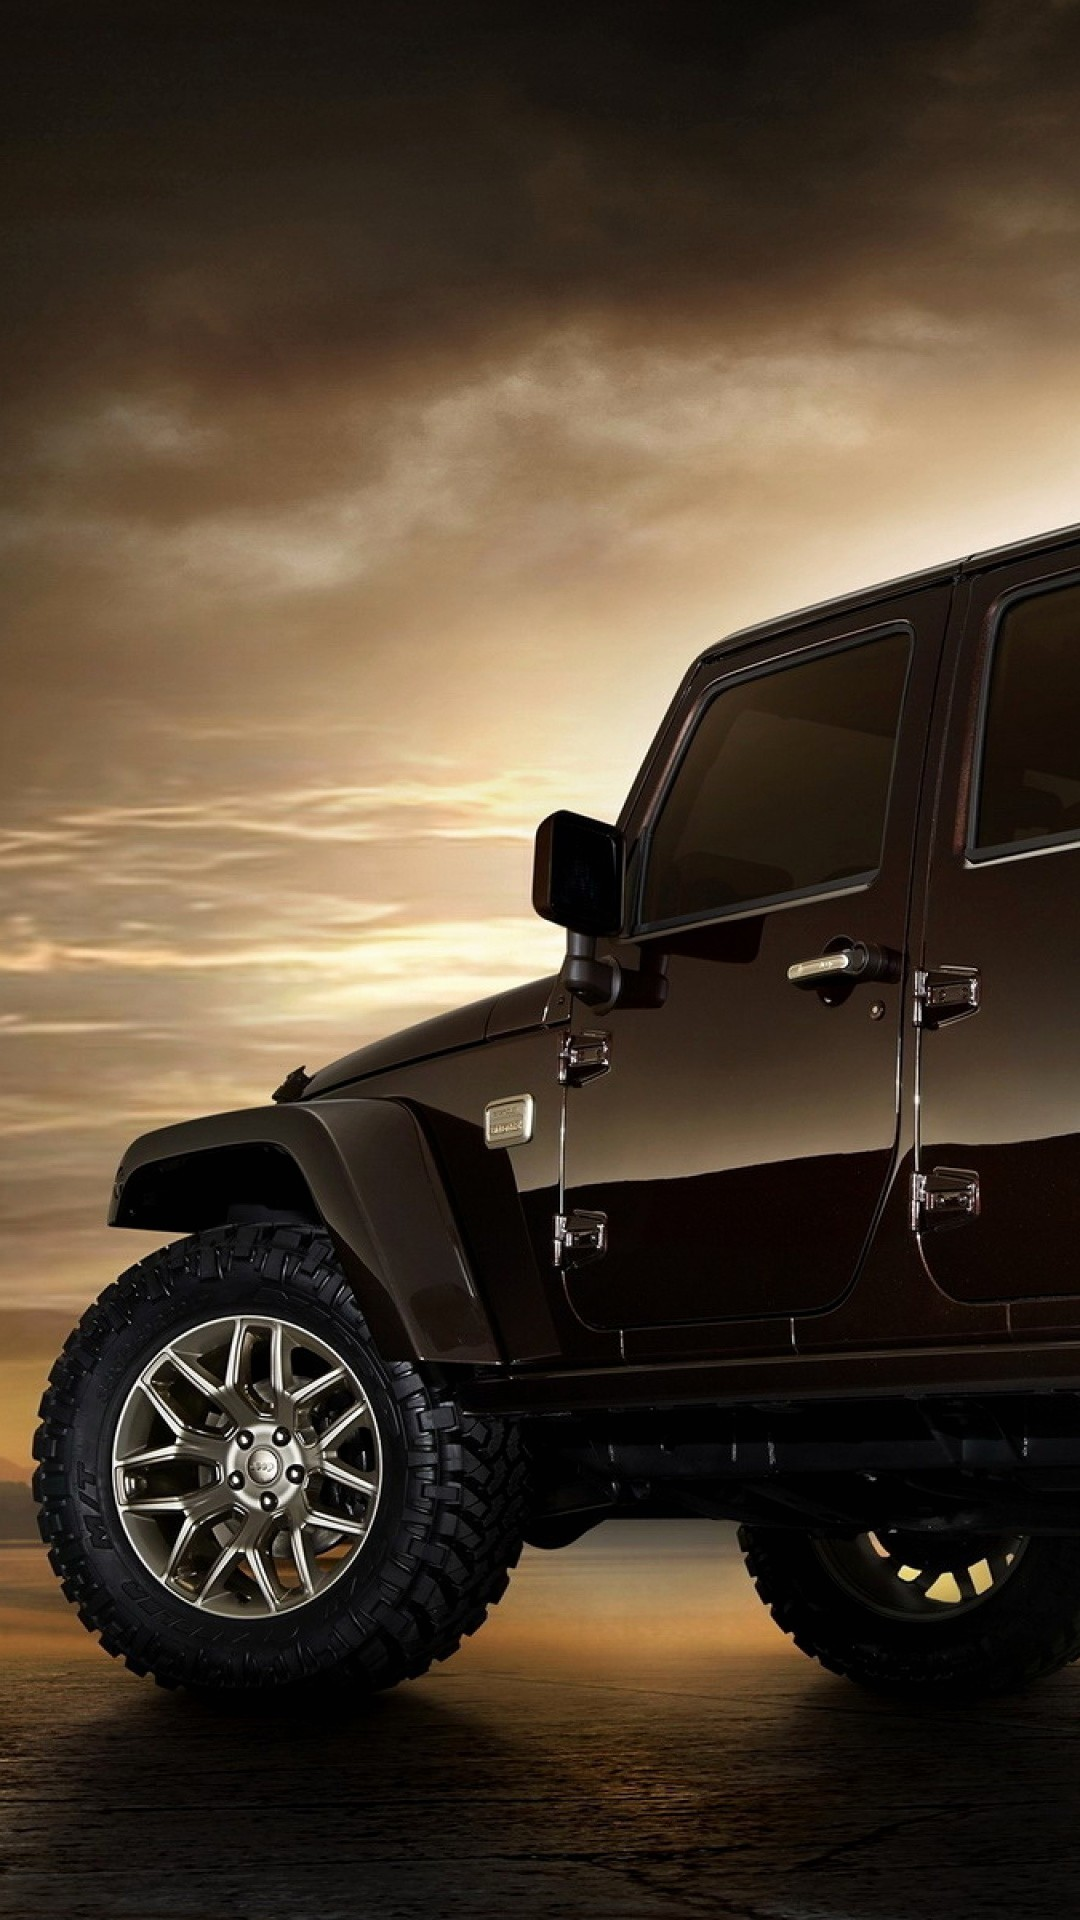 Awesome Wallpaper Iphone Jeep - Jeep Wrangler 4 Portas 2017 , HD Wallpaper & Backgrounds